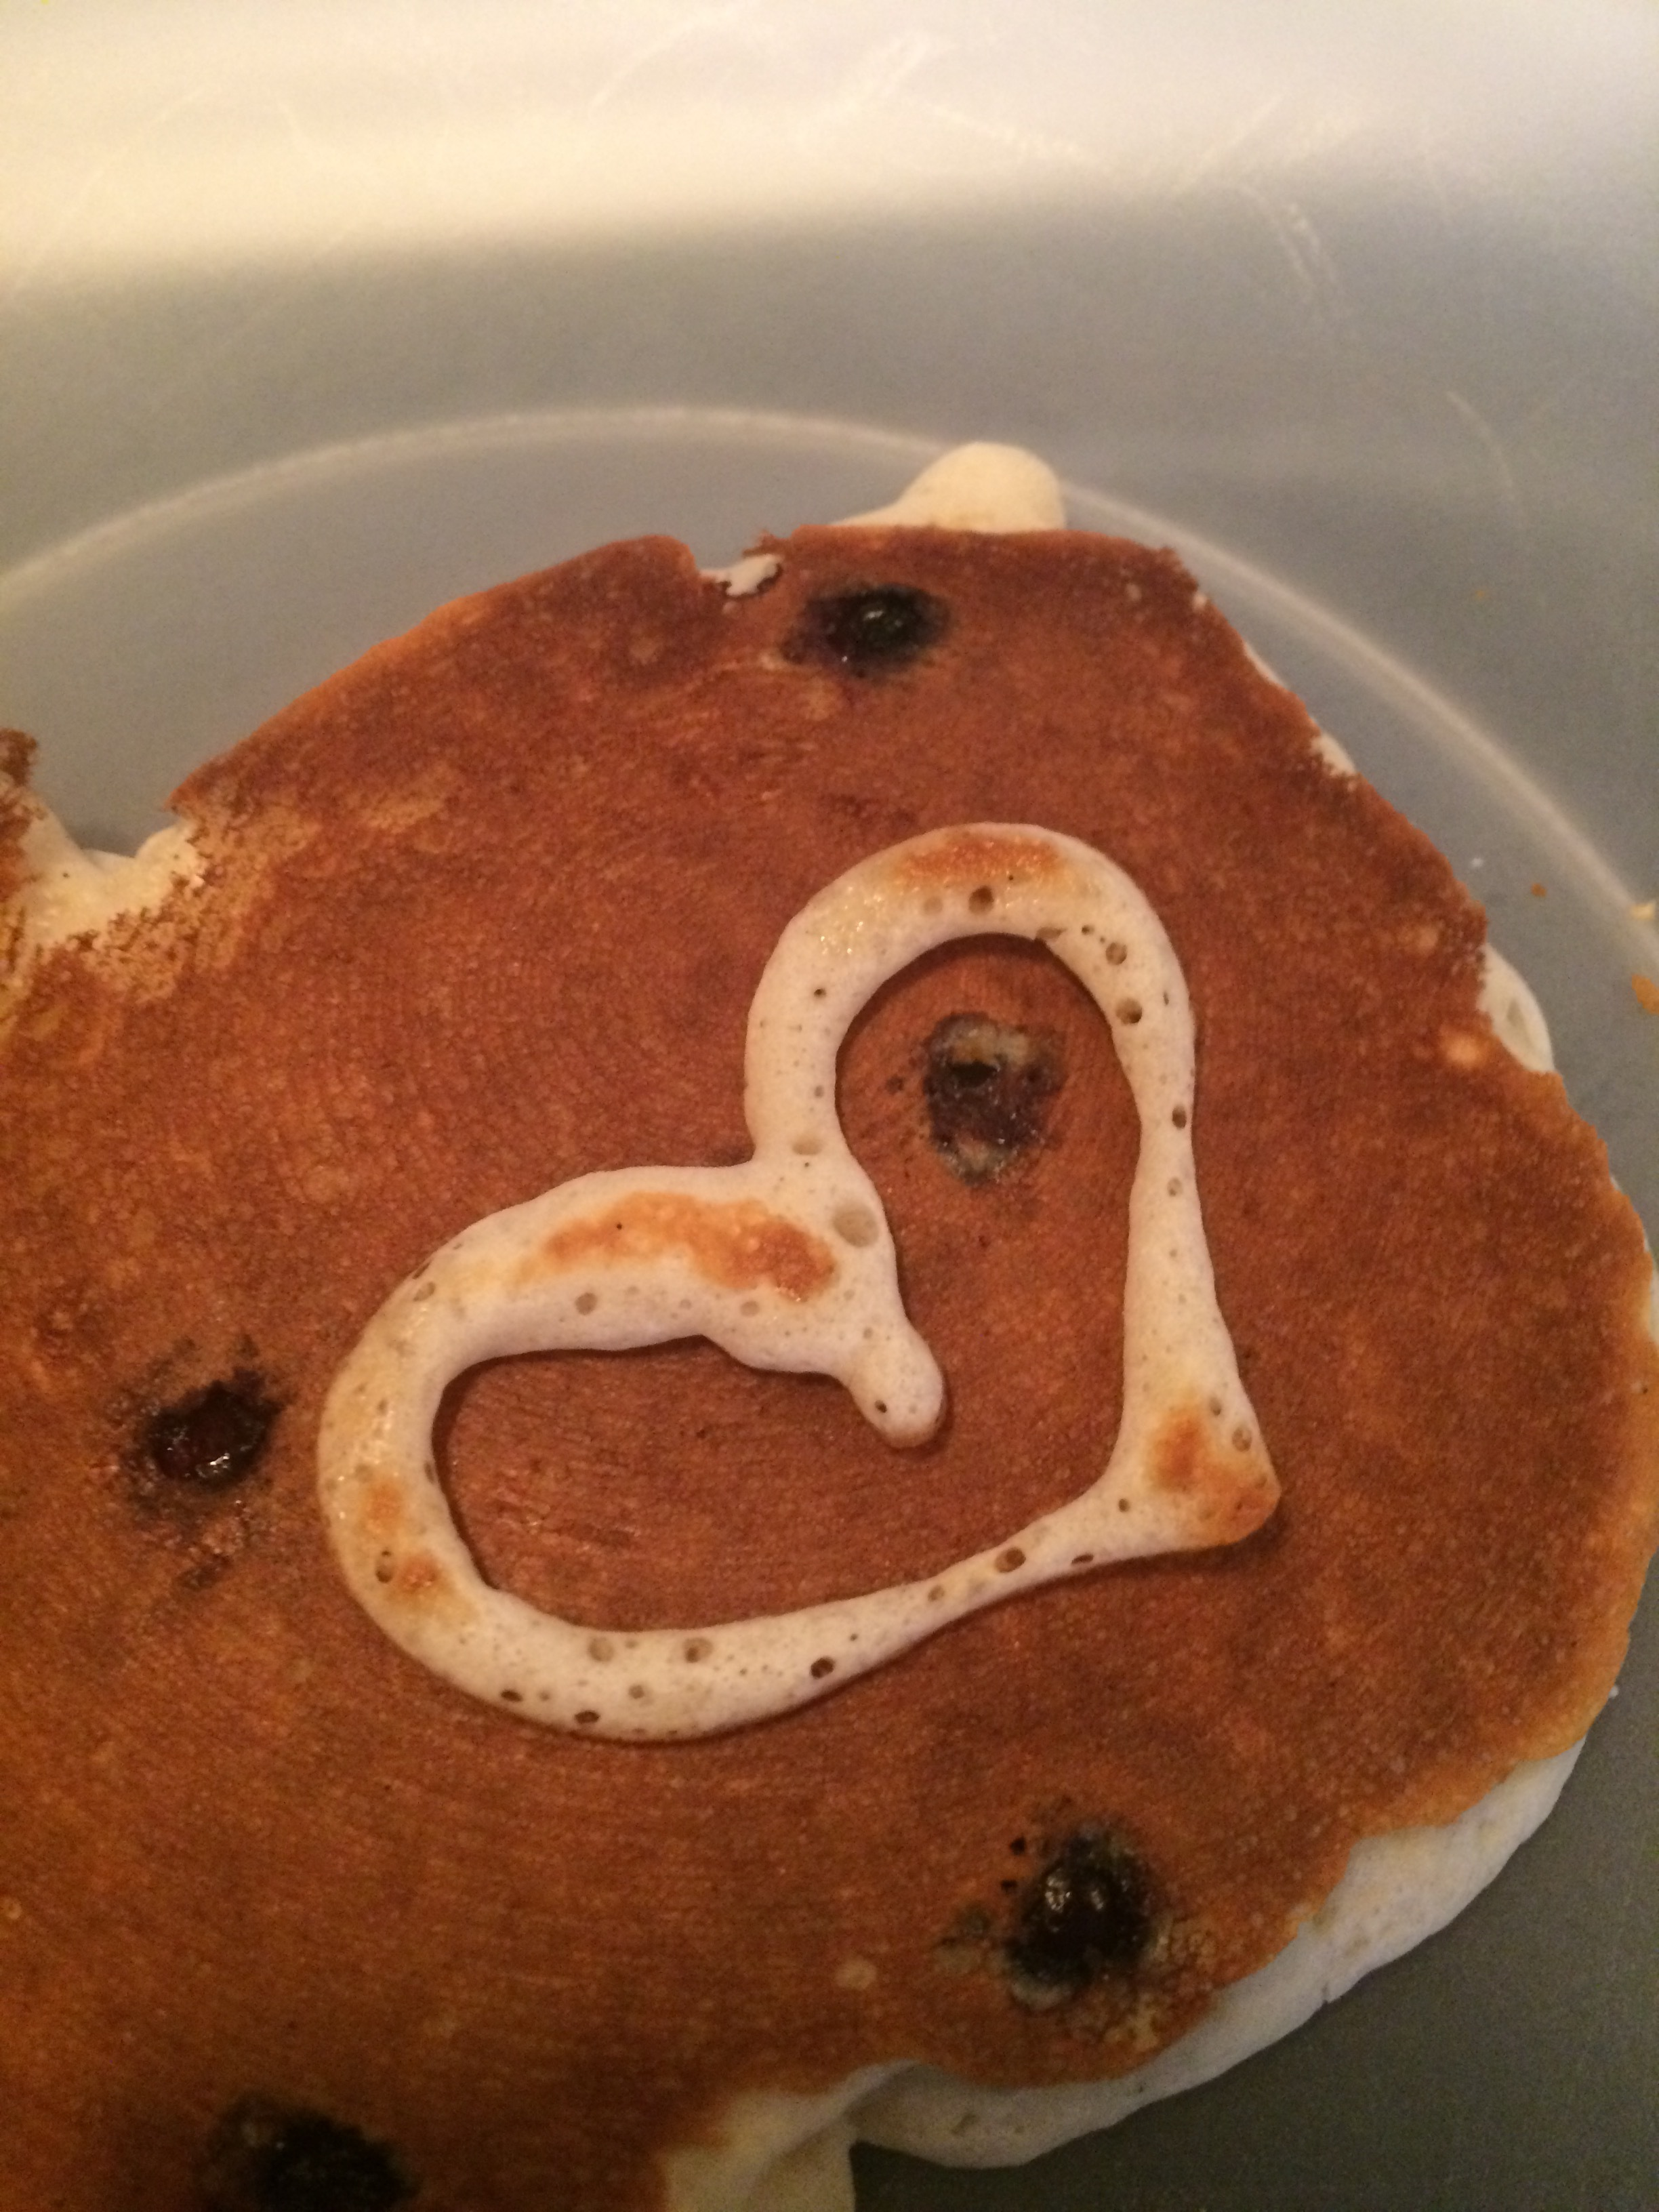 Pancakes made with love...and blueberries!